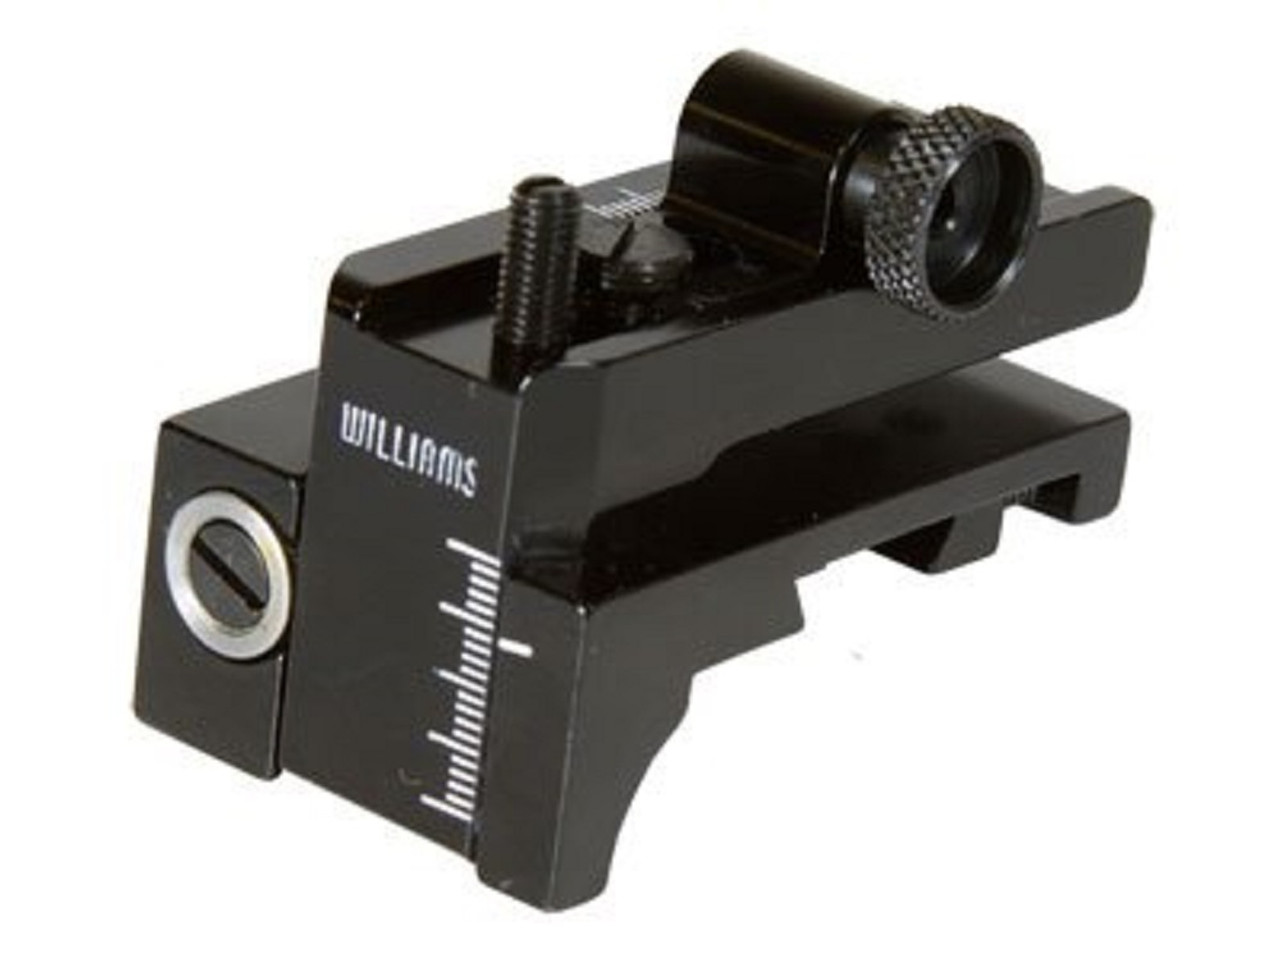 Williams 5D-AG Aperture Rear Sight Rimfire Dovetail Receivers, Black